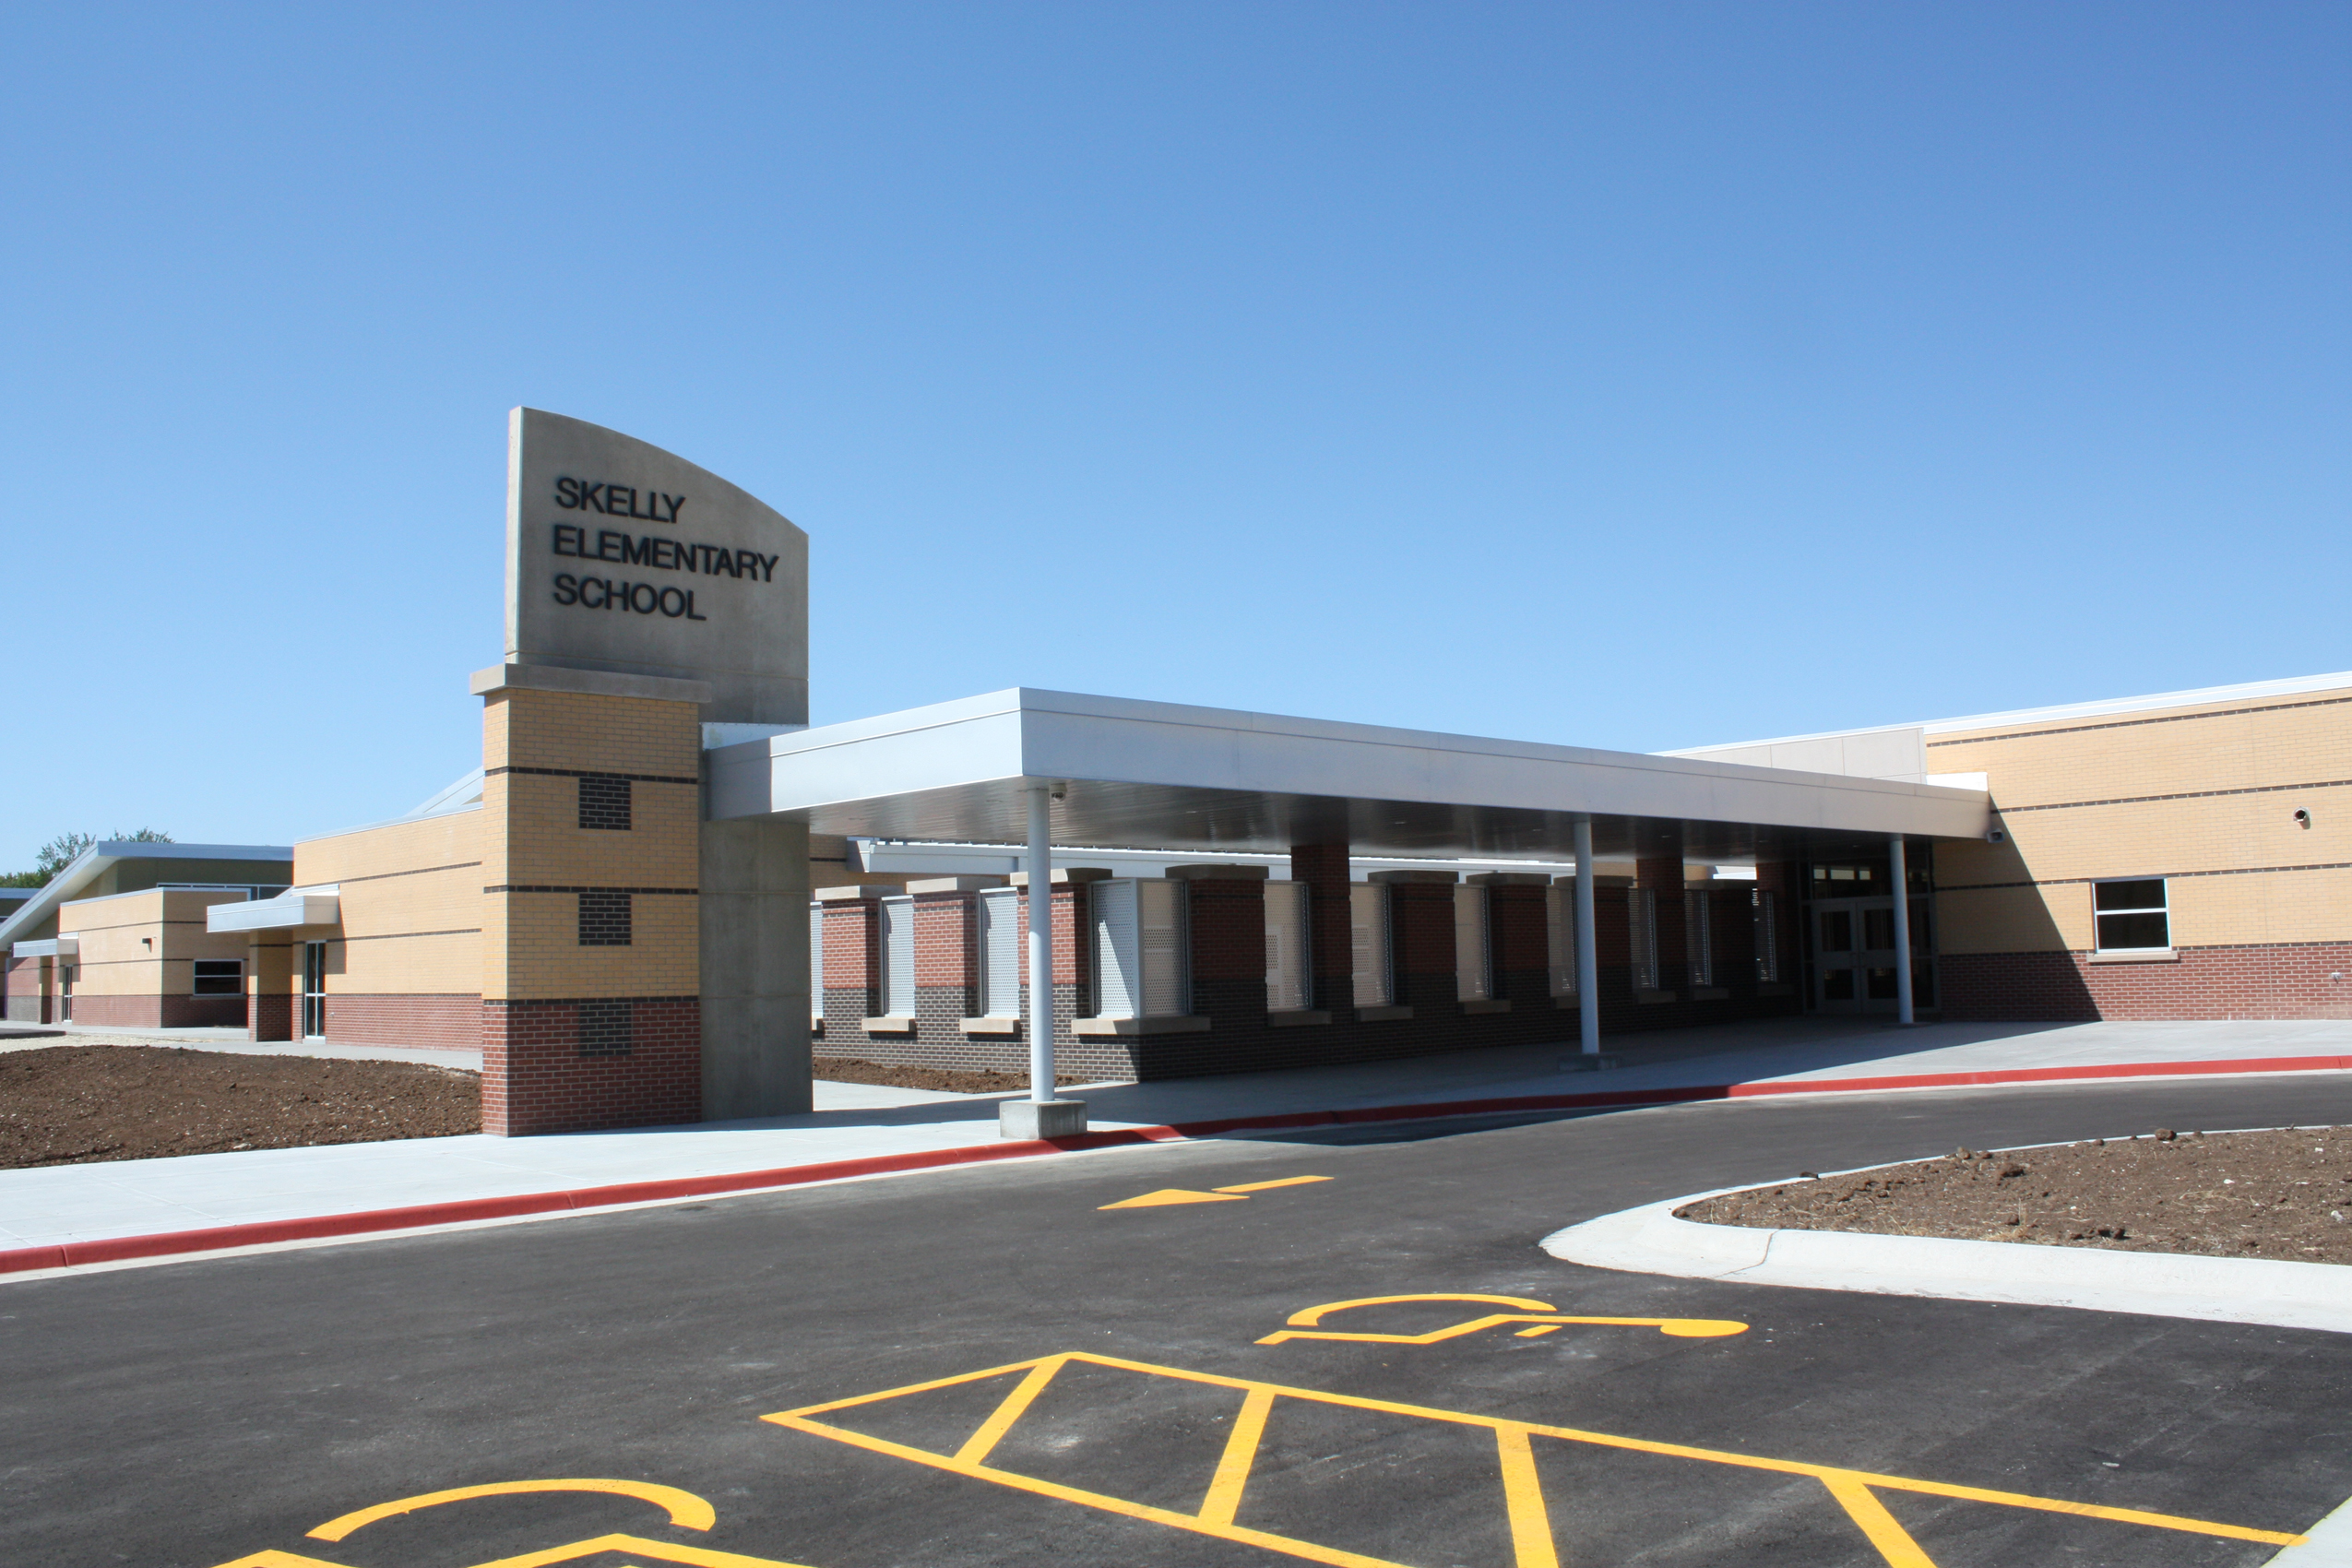 Exterior of Skelly Elementary